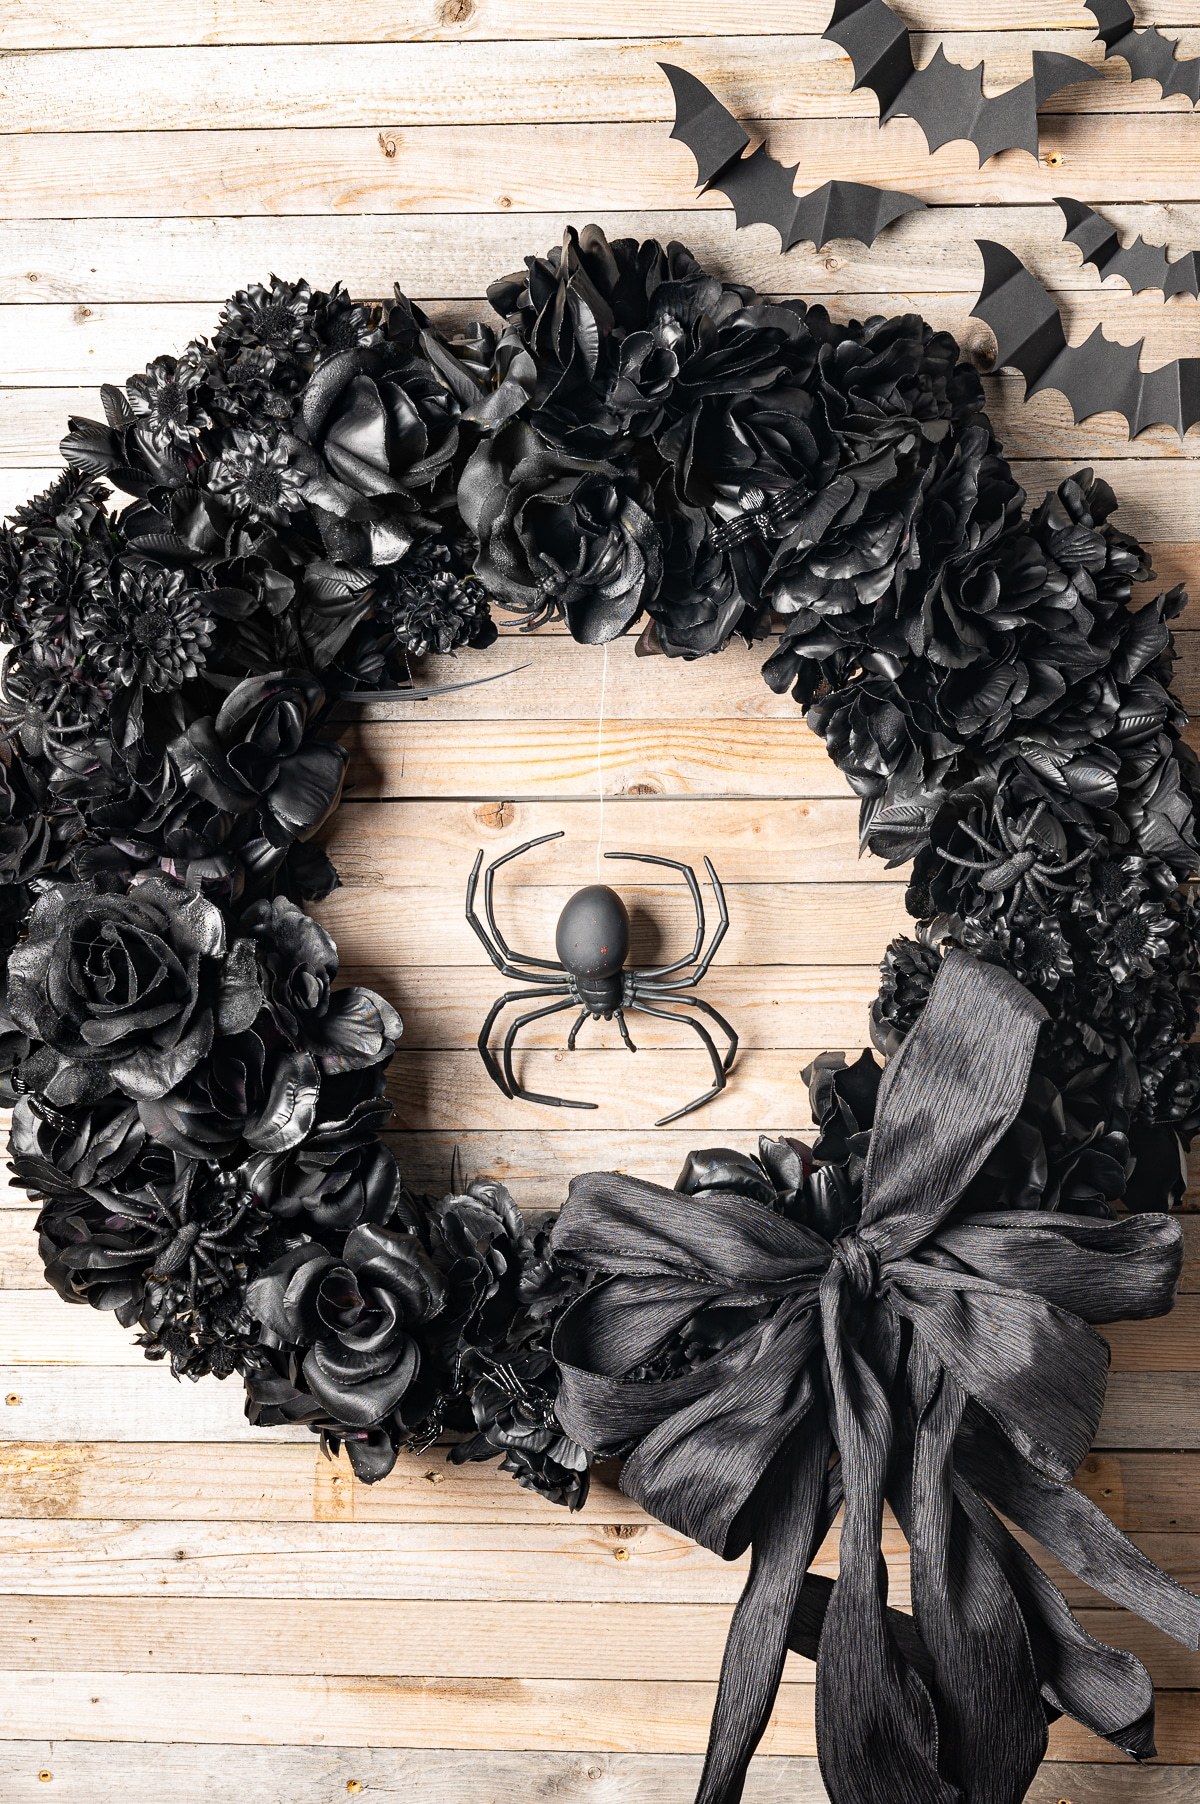 A floral all  black halloween wreath with black bow, and large plastic spider hanging in the centre.  The Wreath is hanging on a rustic pine background with paper bats